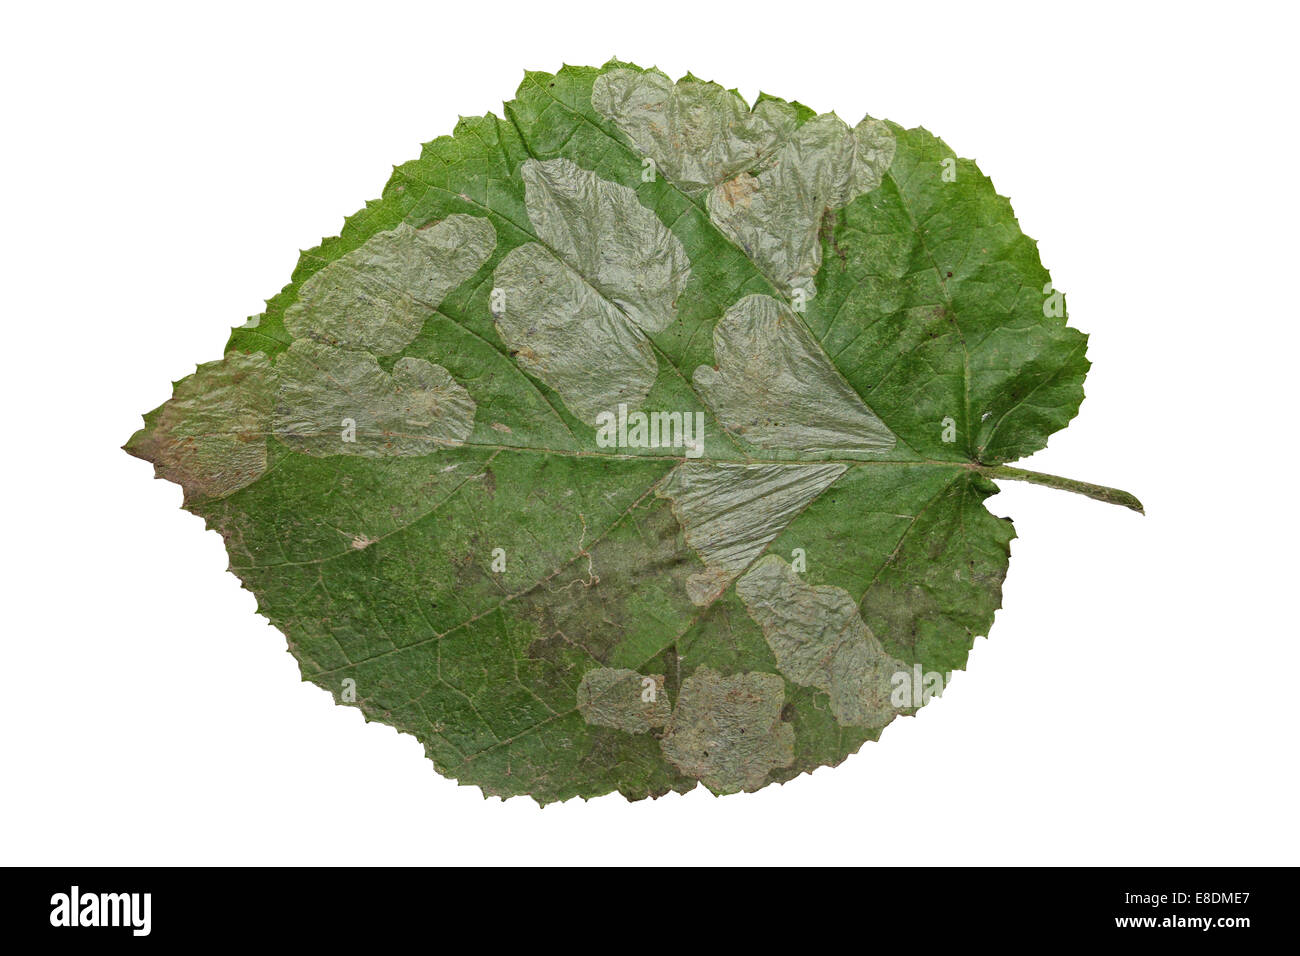 Leaf Mines on Hazel Corylus avellana leaves caused by the Nut Leaf Blister Moth Phyllonorycter coryli - Stock Image